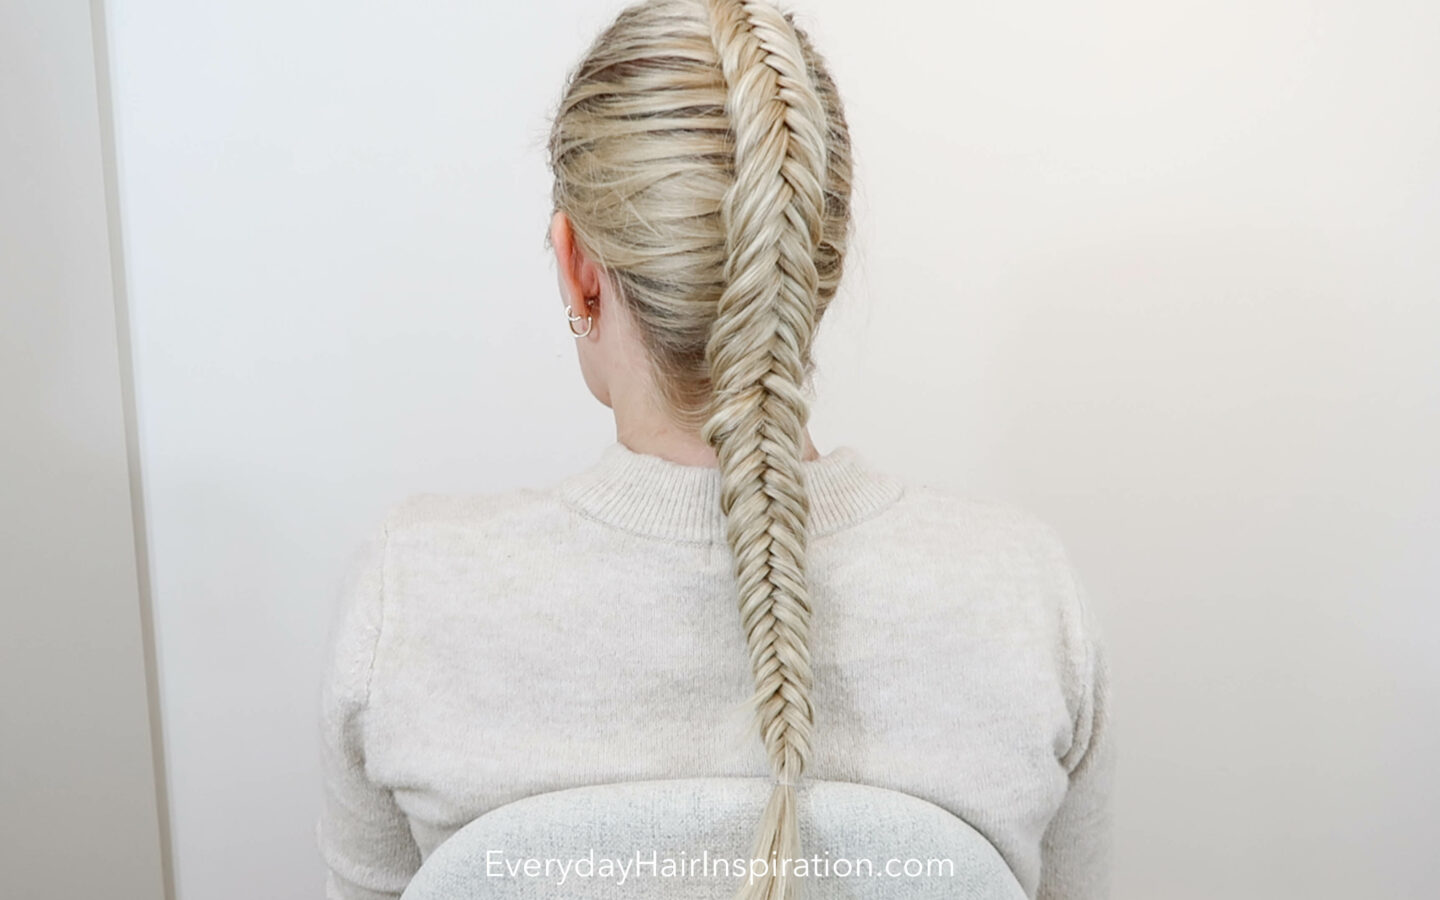 Blonde girl with her back to the camera with a single dutch fishtail braid in her hair, looking to the left.